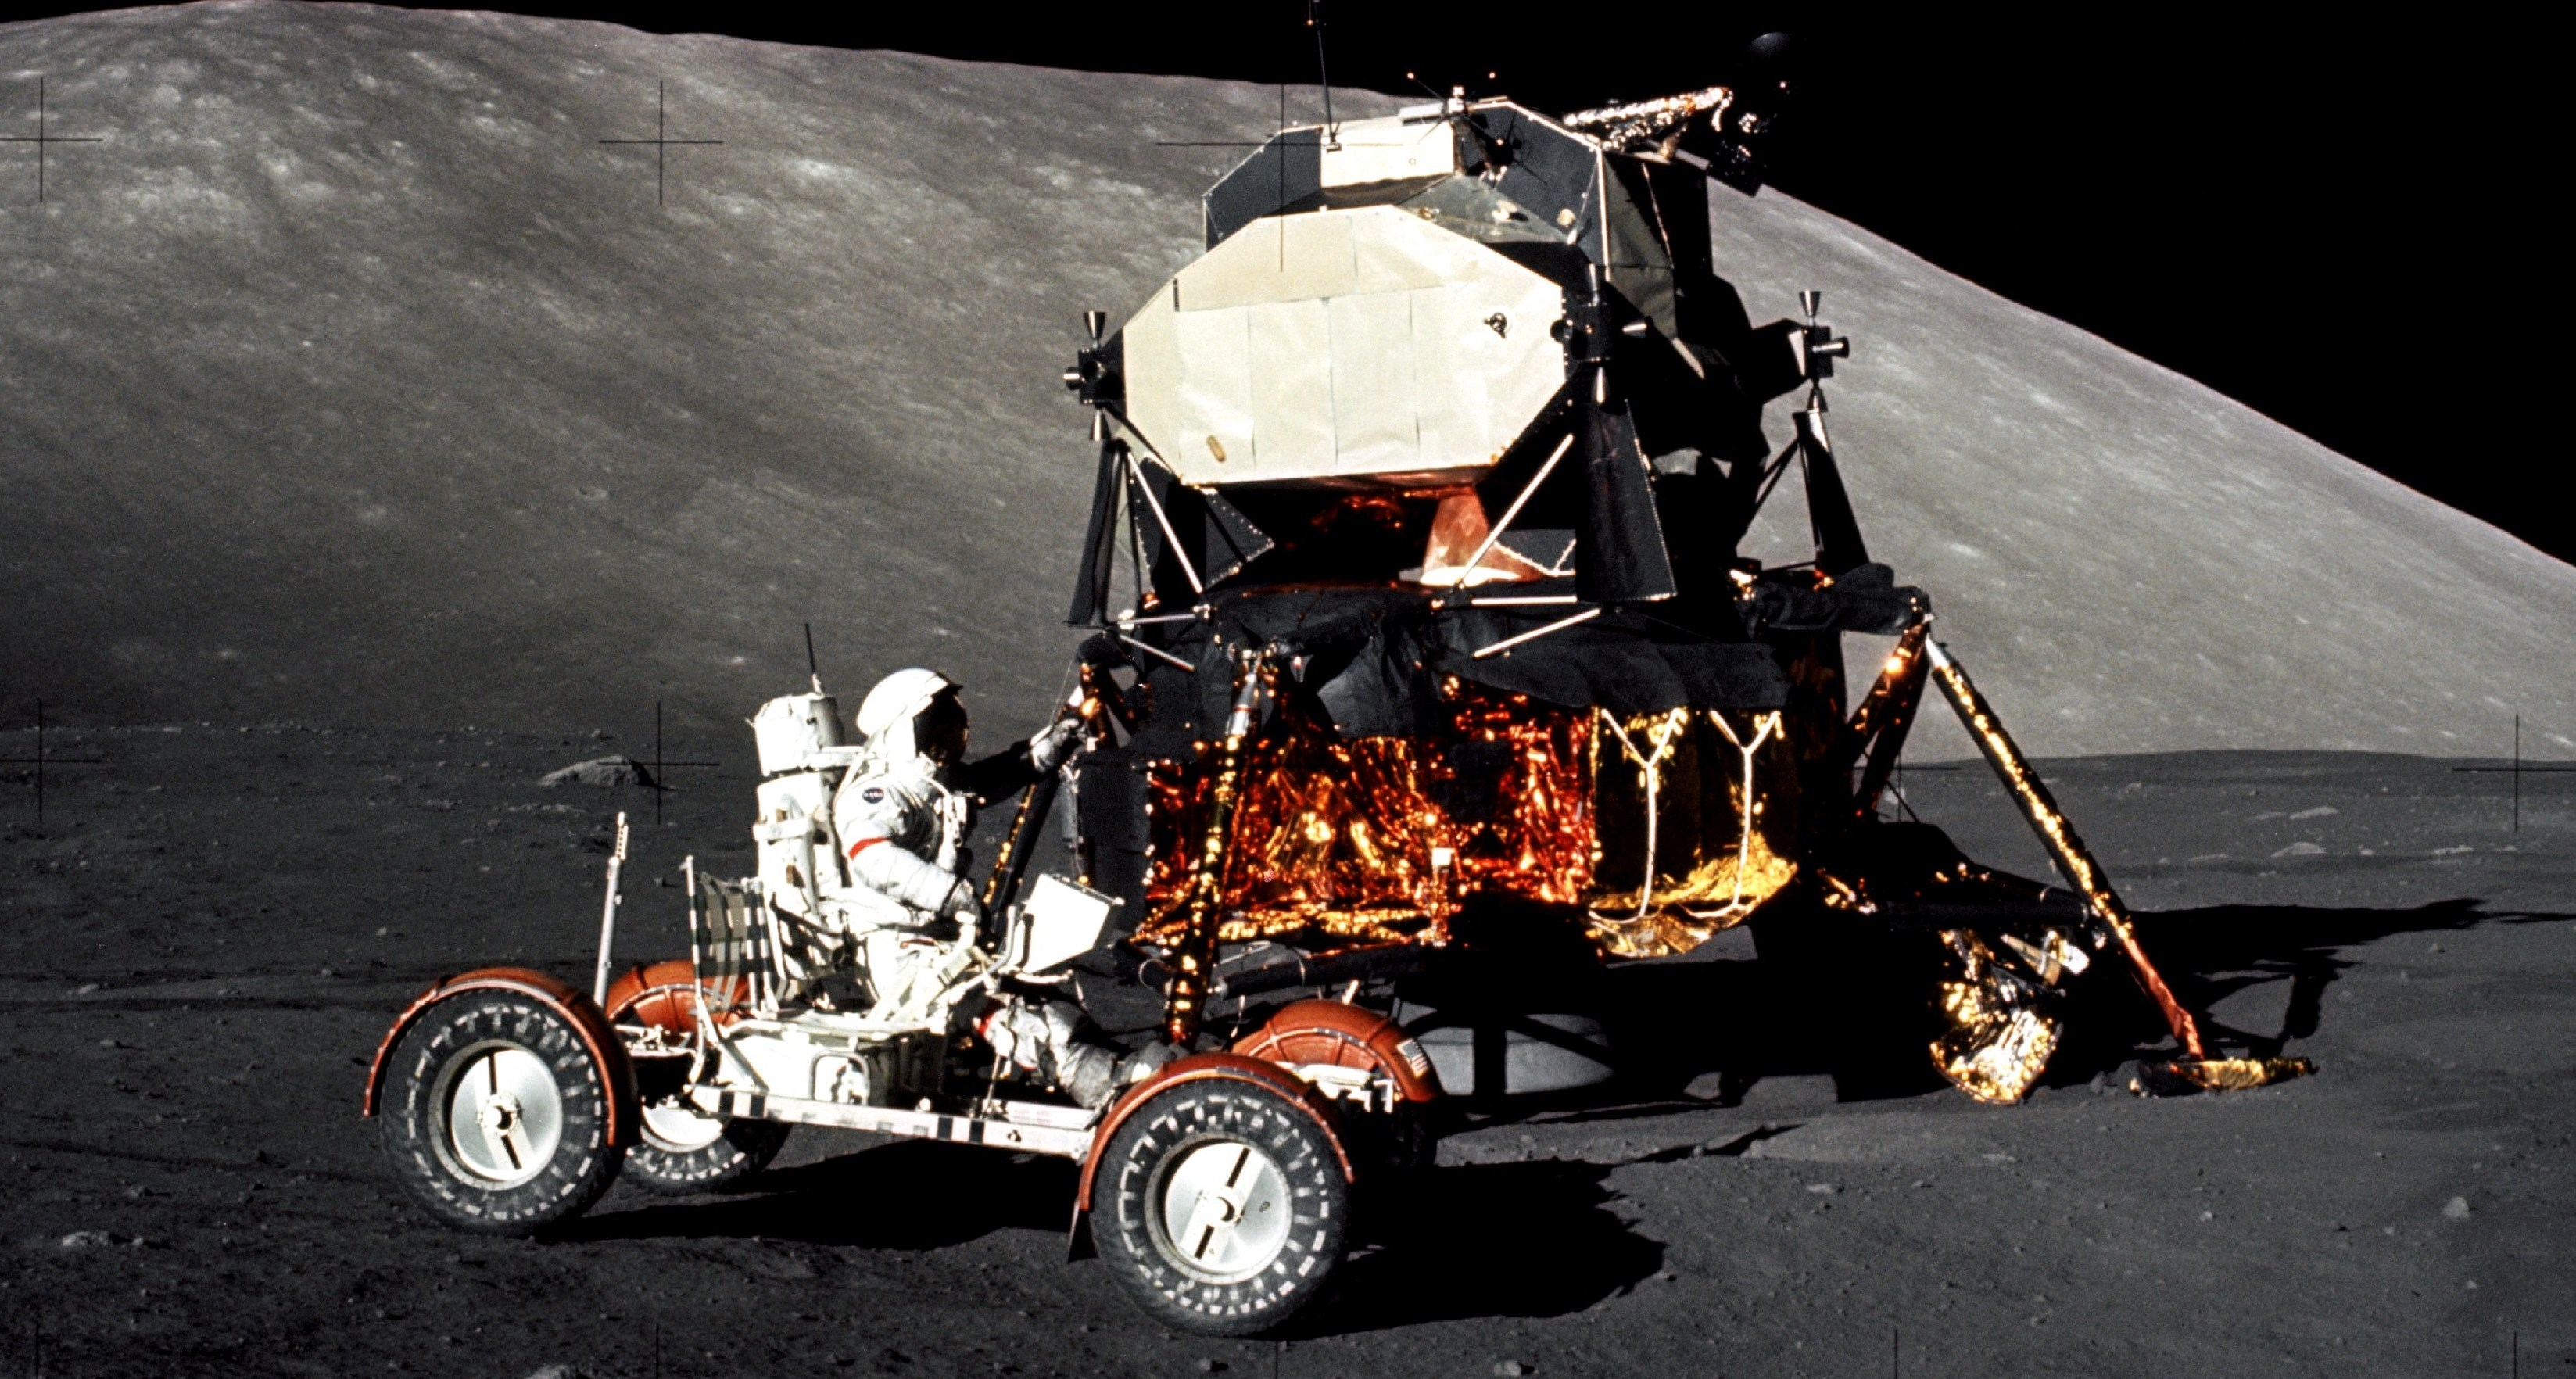 The Lunar Rover and Lander taken in 1972. When will we see man on the moon again?